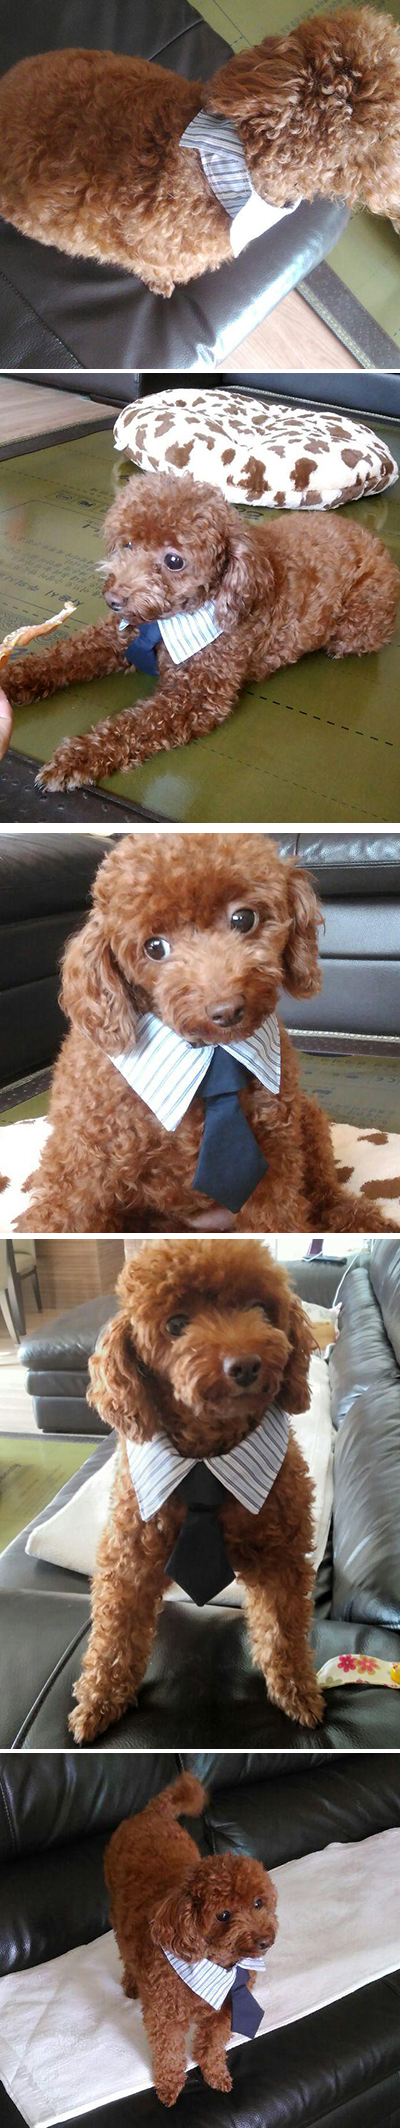 dog_necktie4.jpg